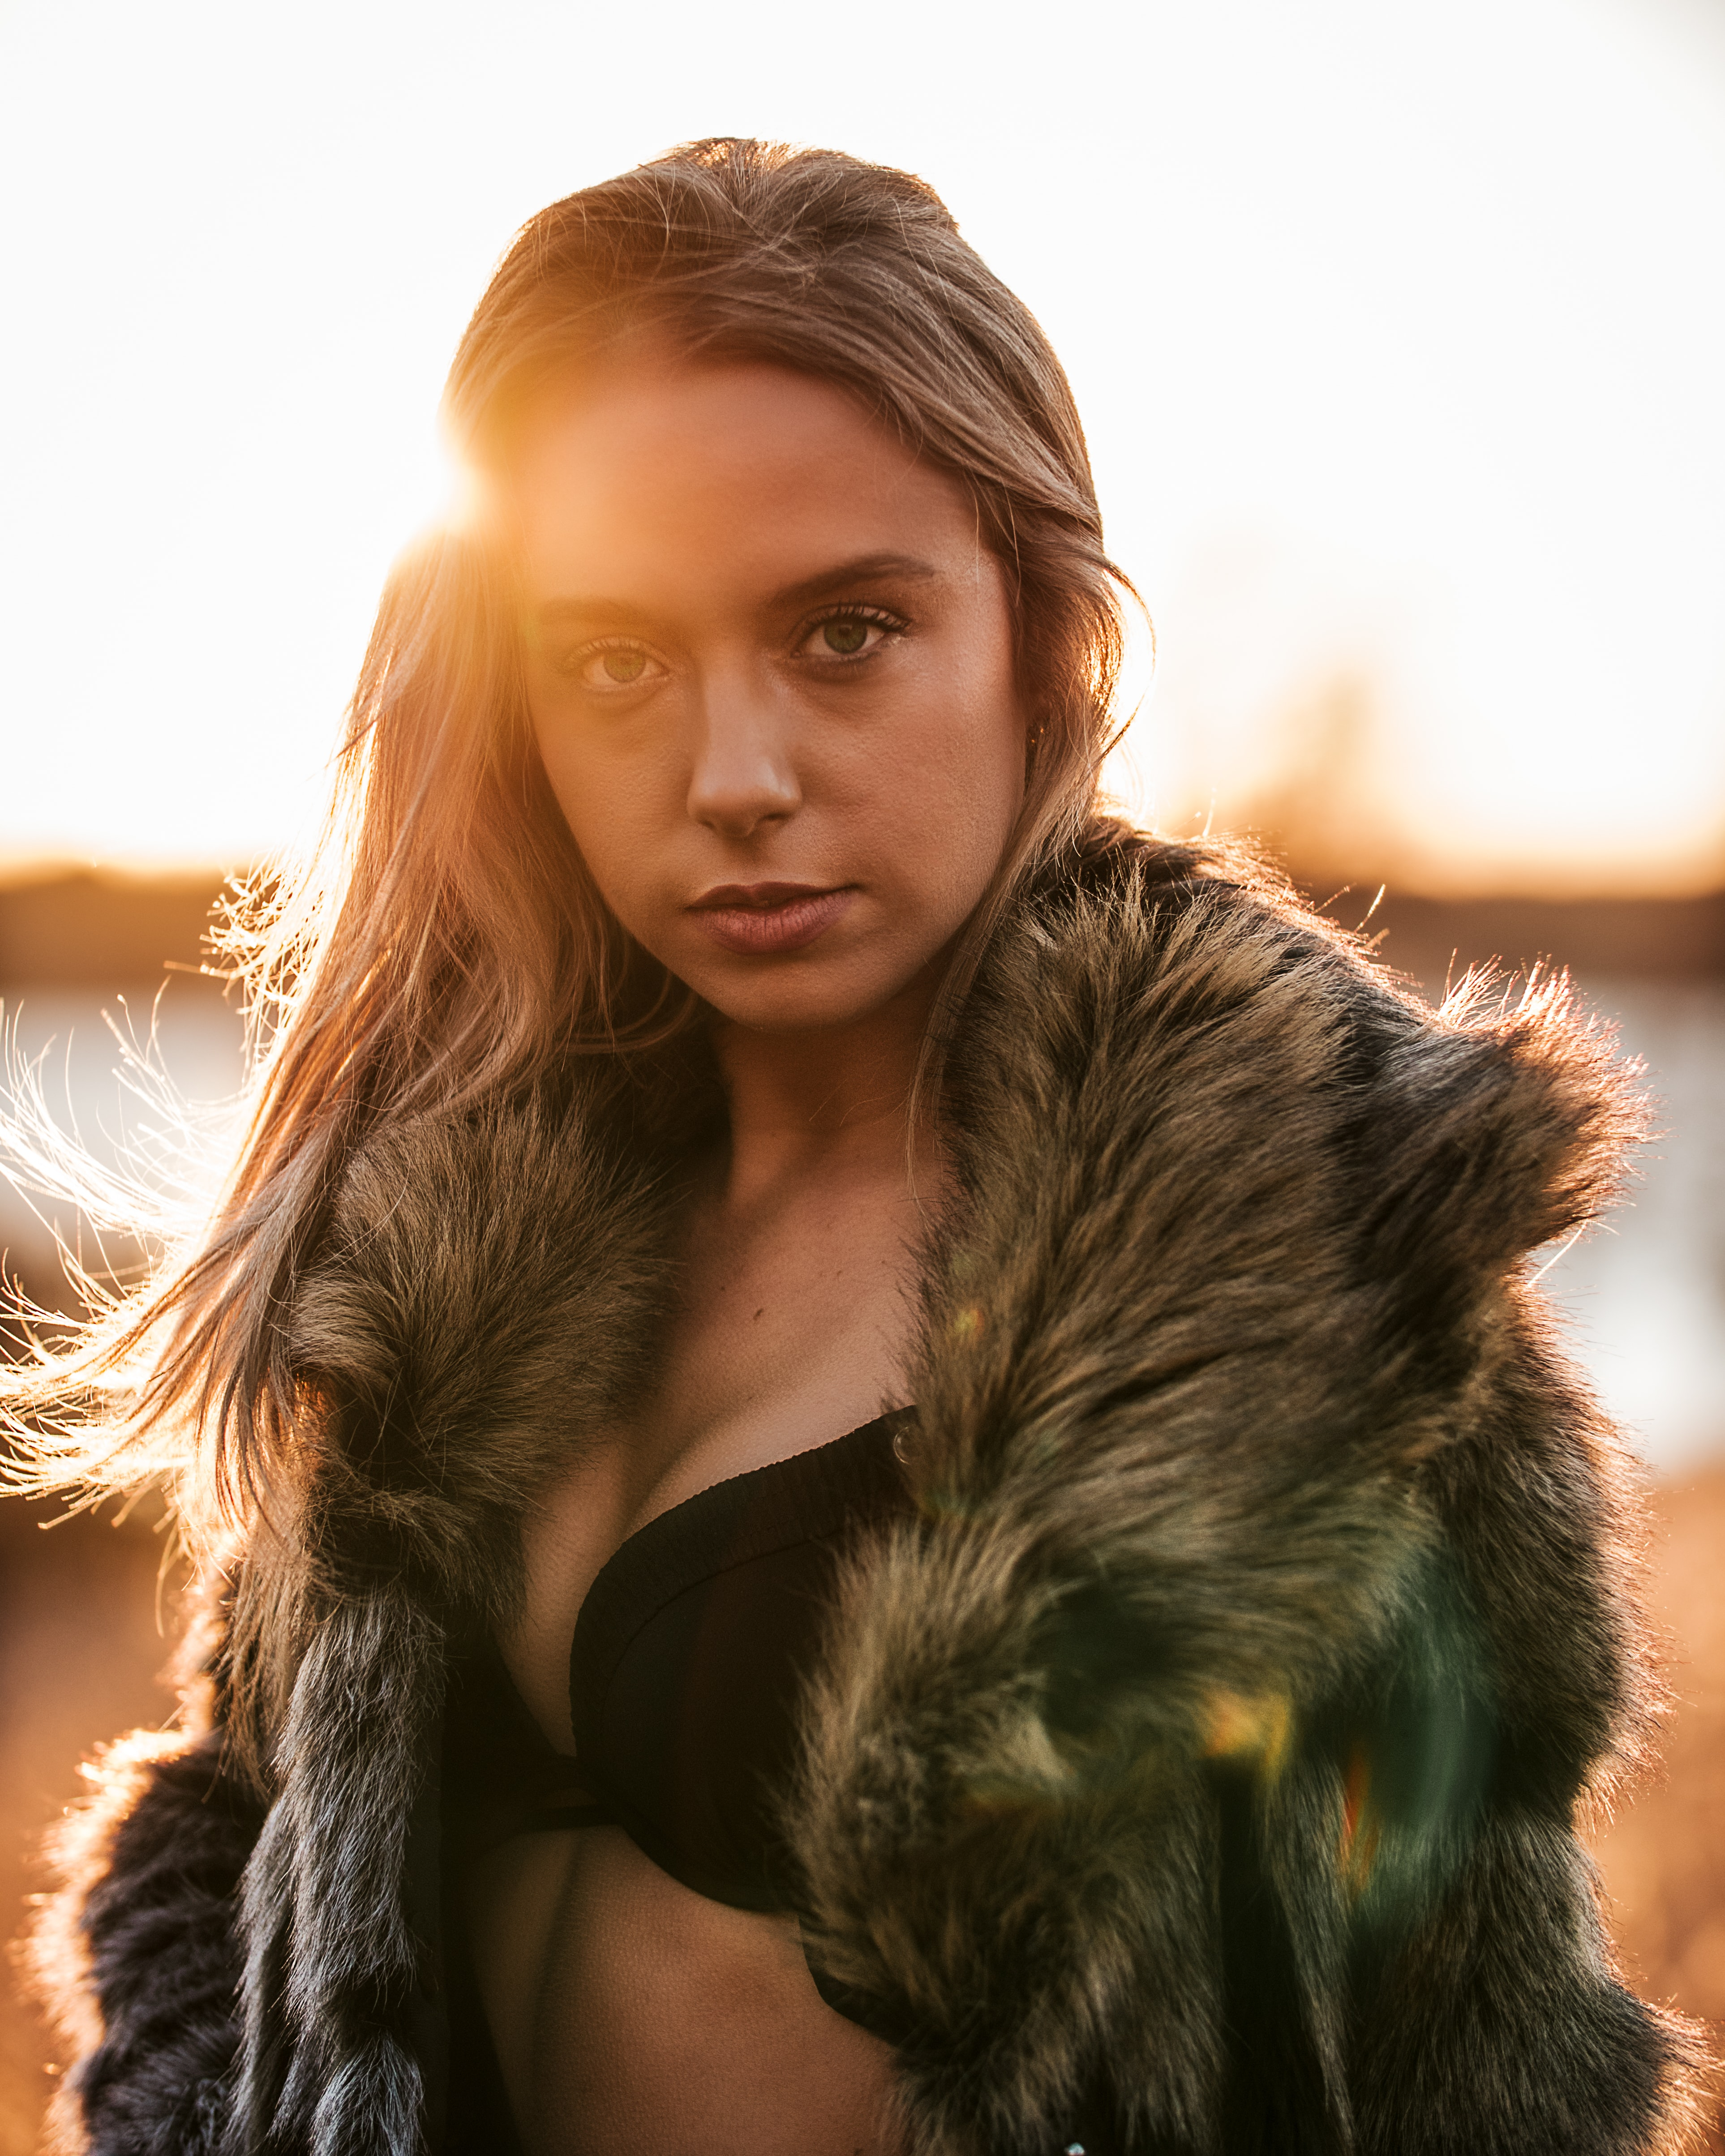 selective focus photography of woman wearing black brassiere and fur coat